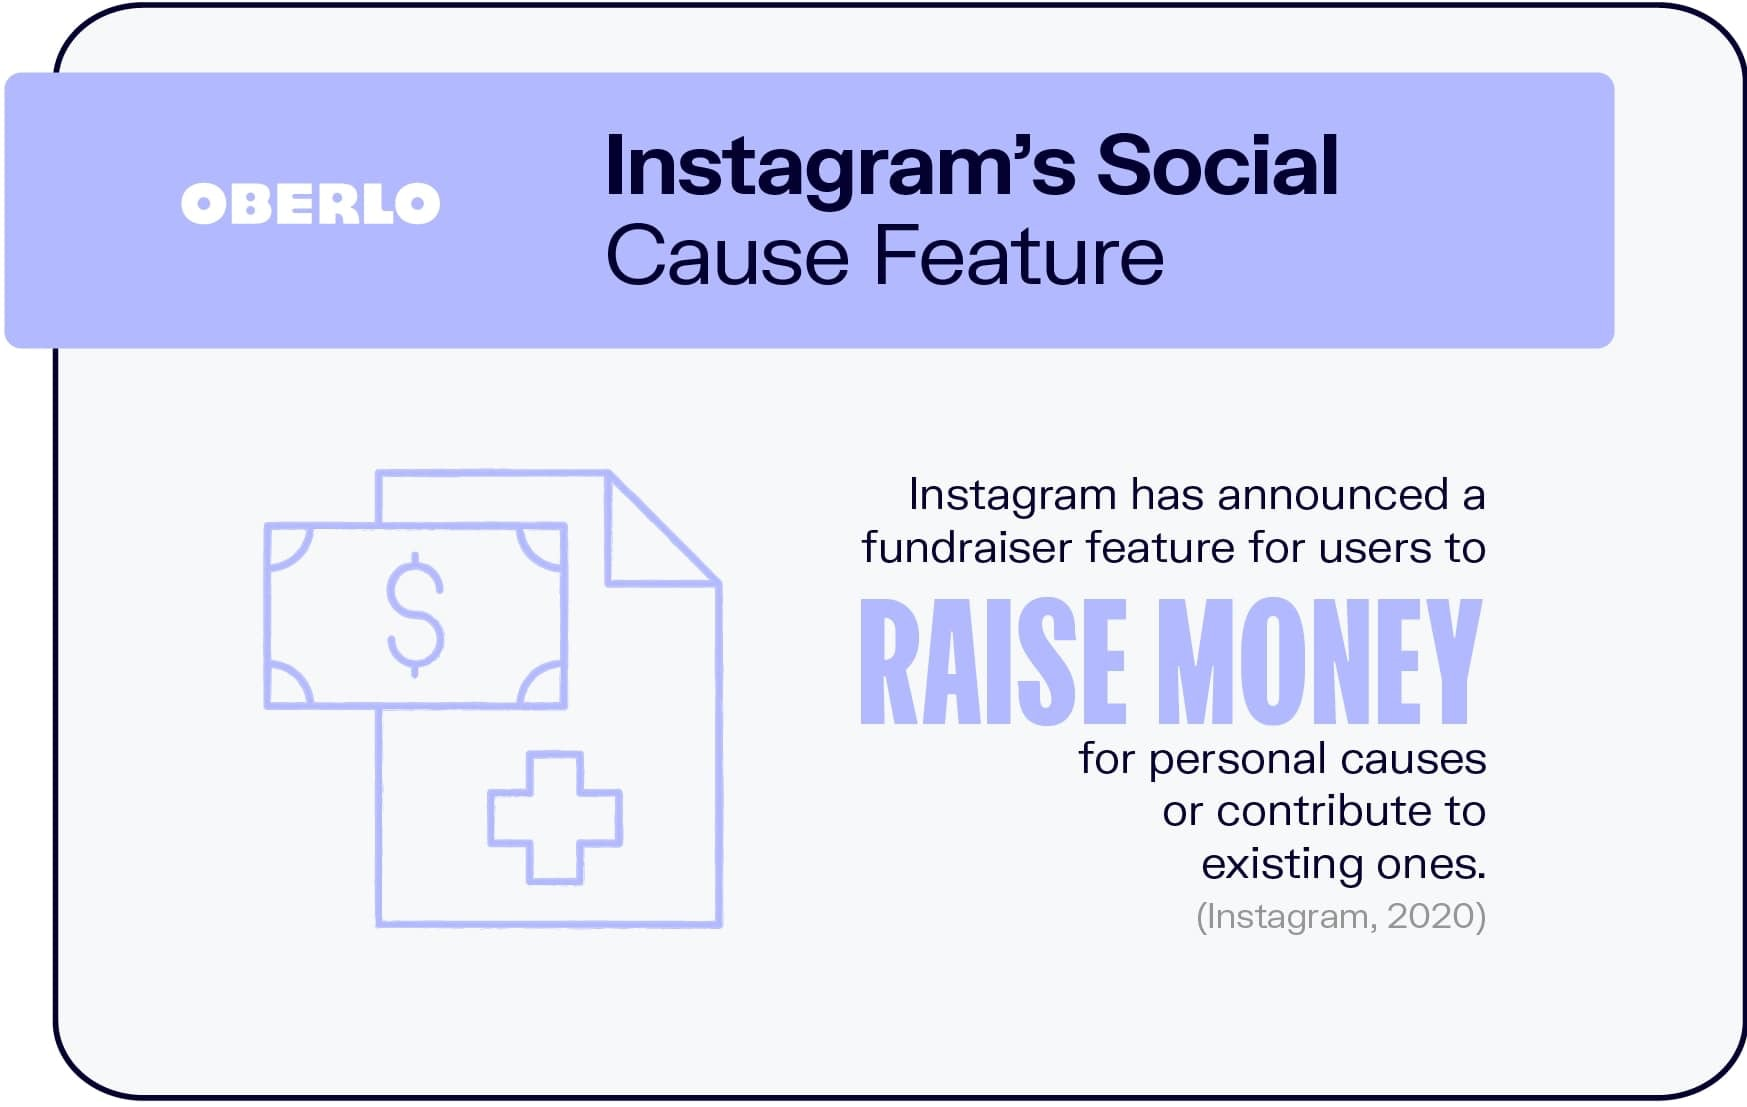 Instagram's Social Cause Feature